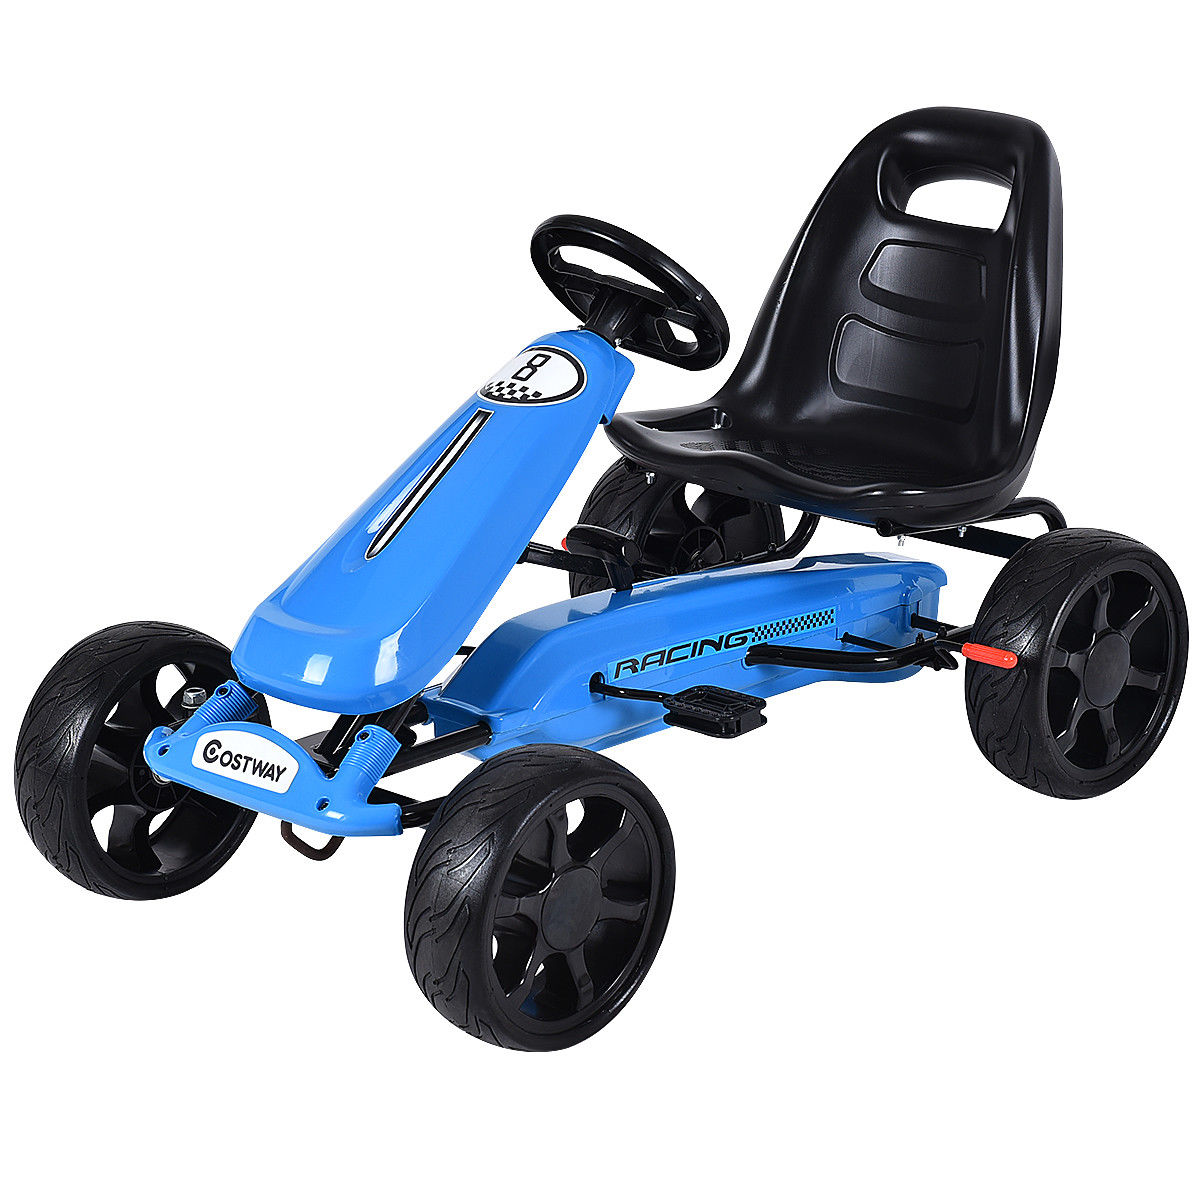 Click here to buy Costway Xmas Gift Go Kart Kids Ride On Car Pedal Powered Car 4 Wheel Racer Toy Stealth Outdoor by Costway.